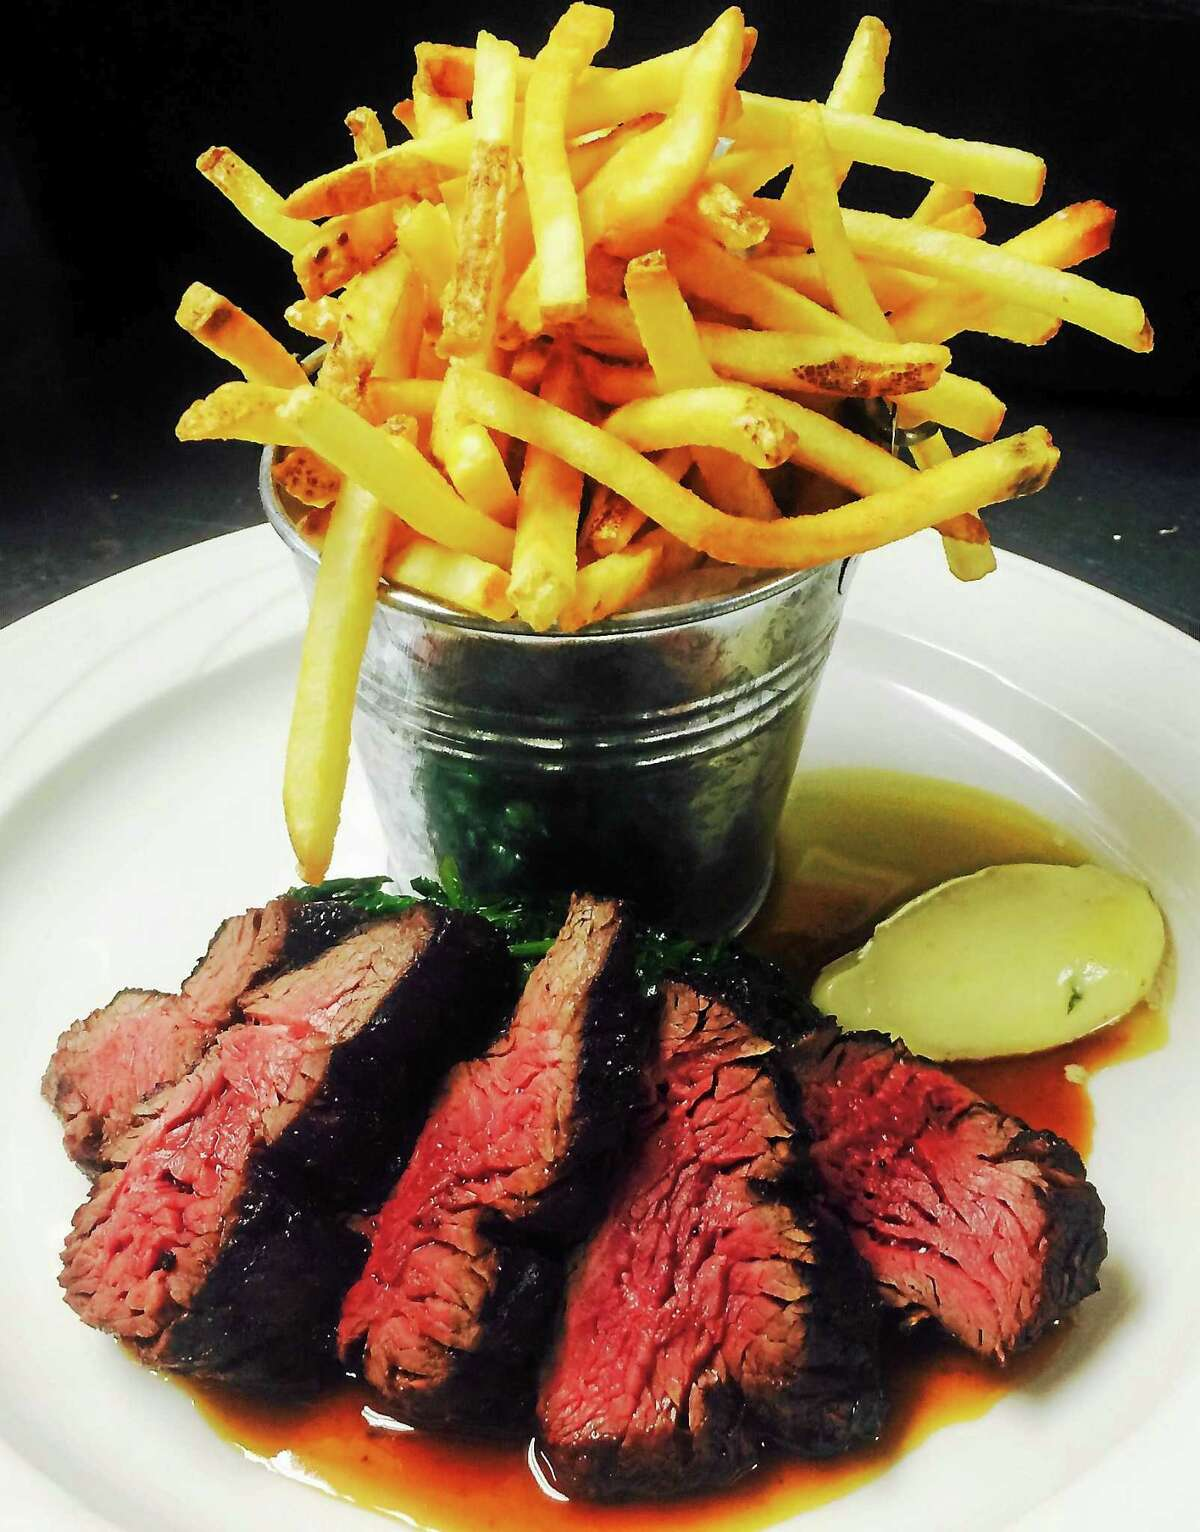 Steak and fries at John's Cafe.